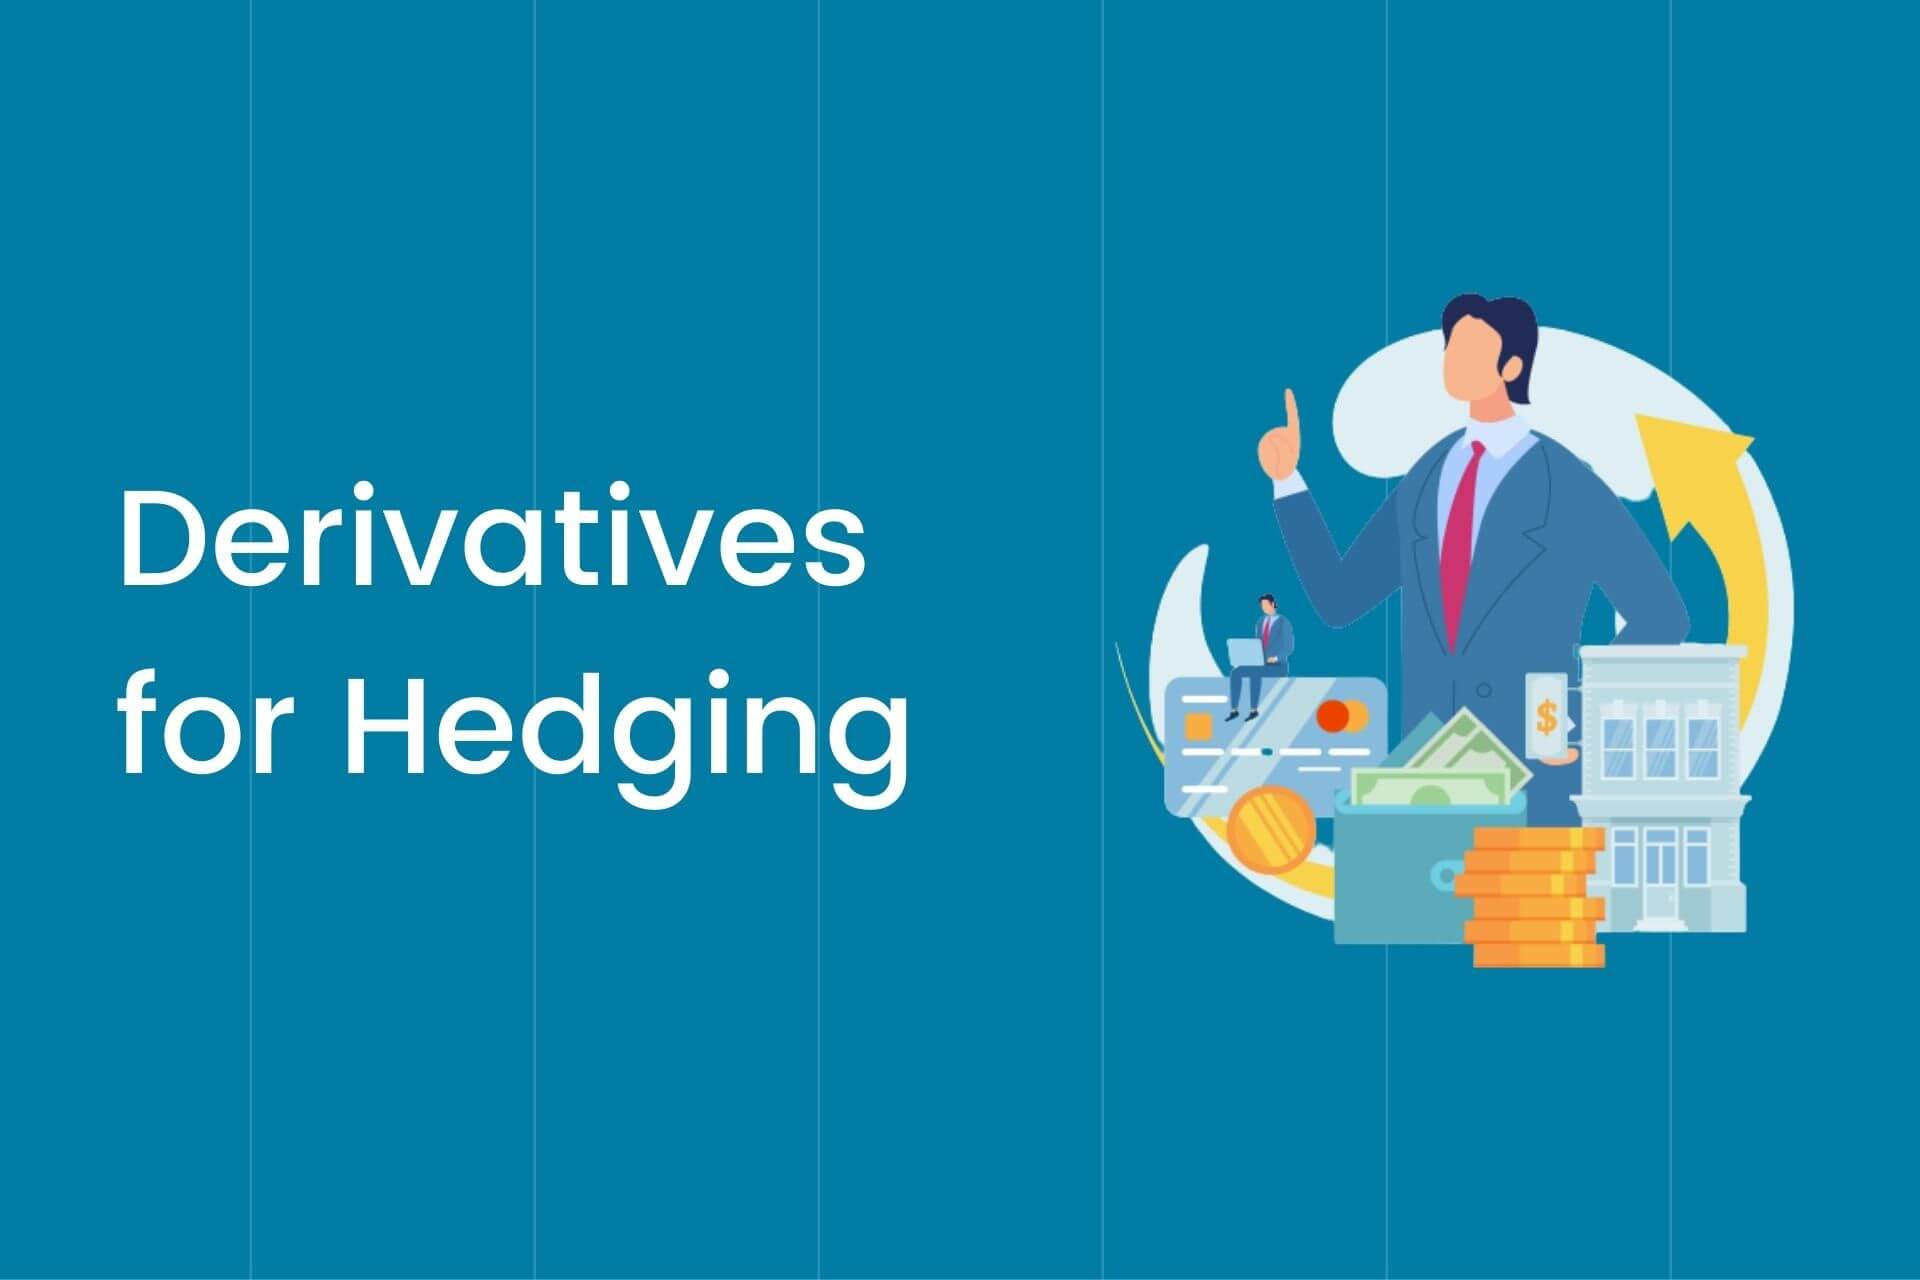 Derivatives for Hedging cover